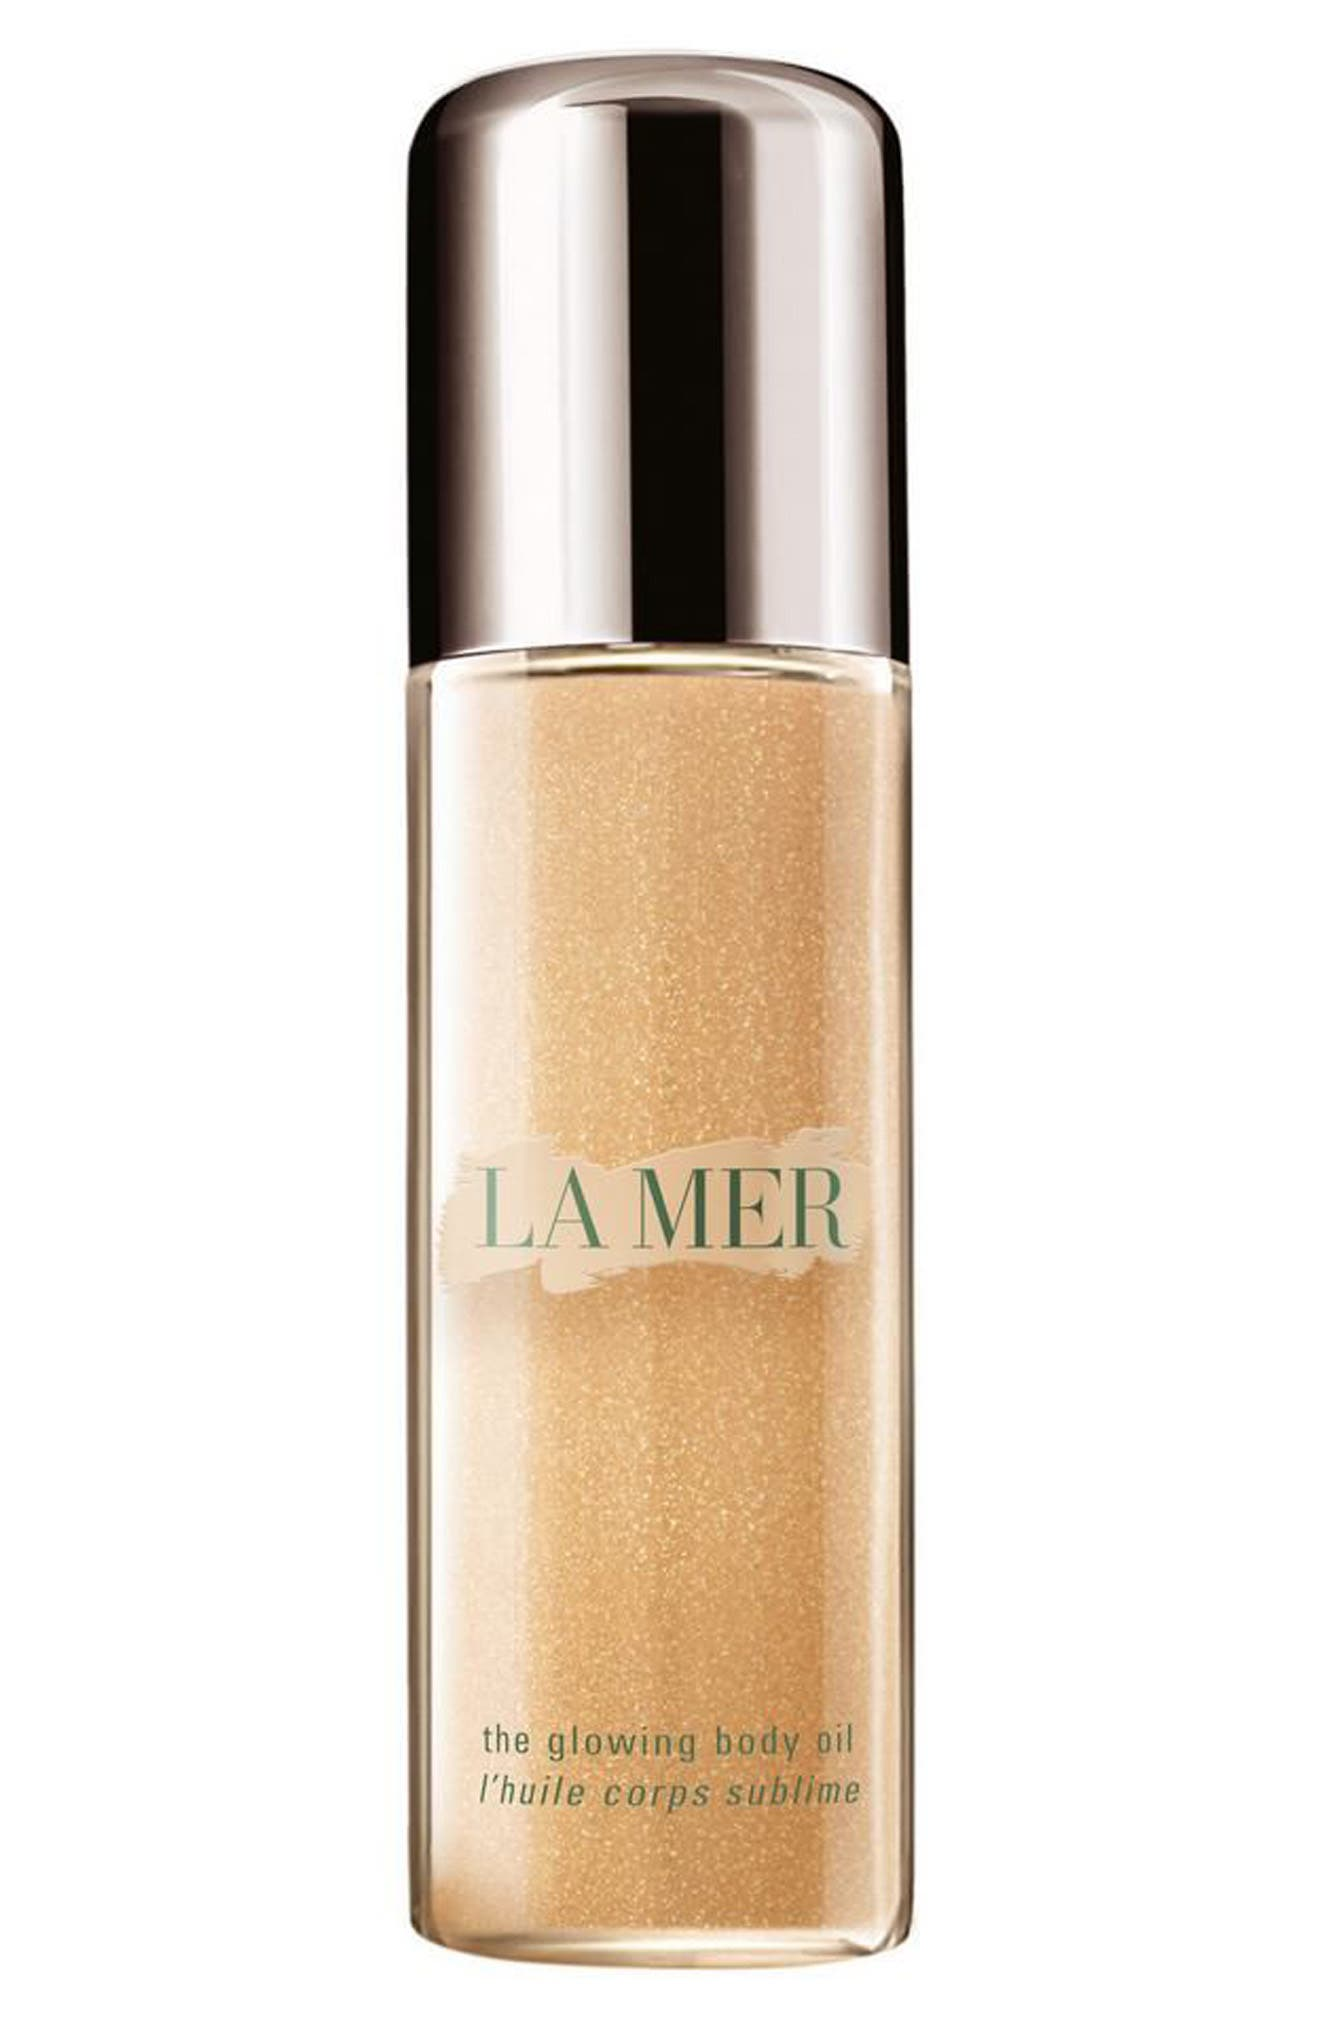 La Mer The Glowing Body Oil (Limited Edition)